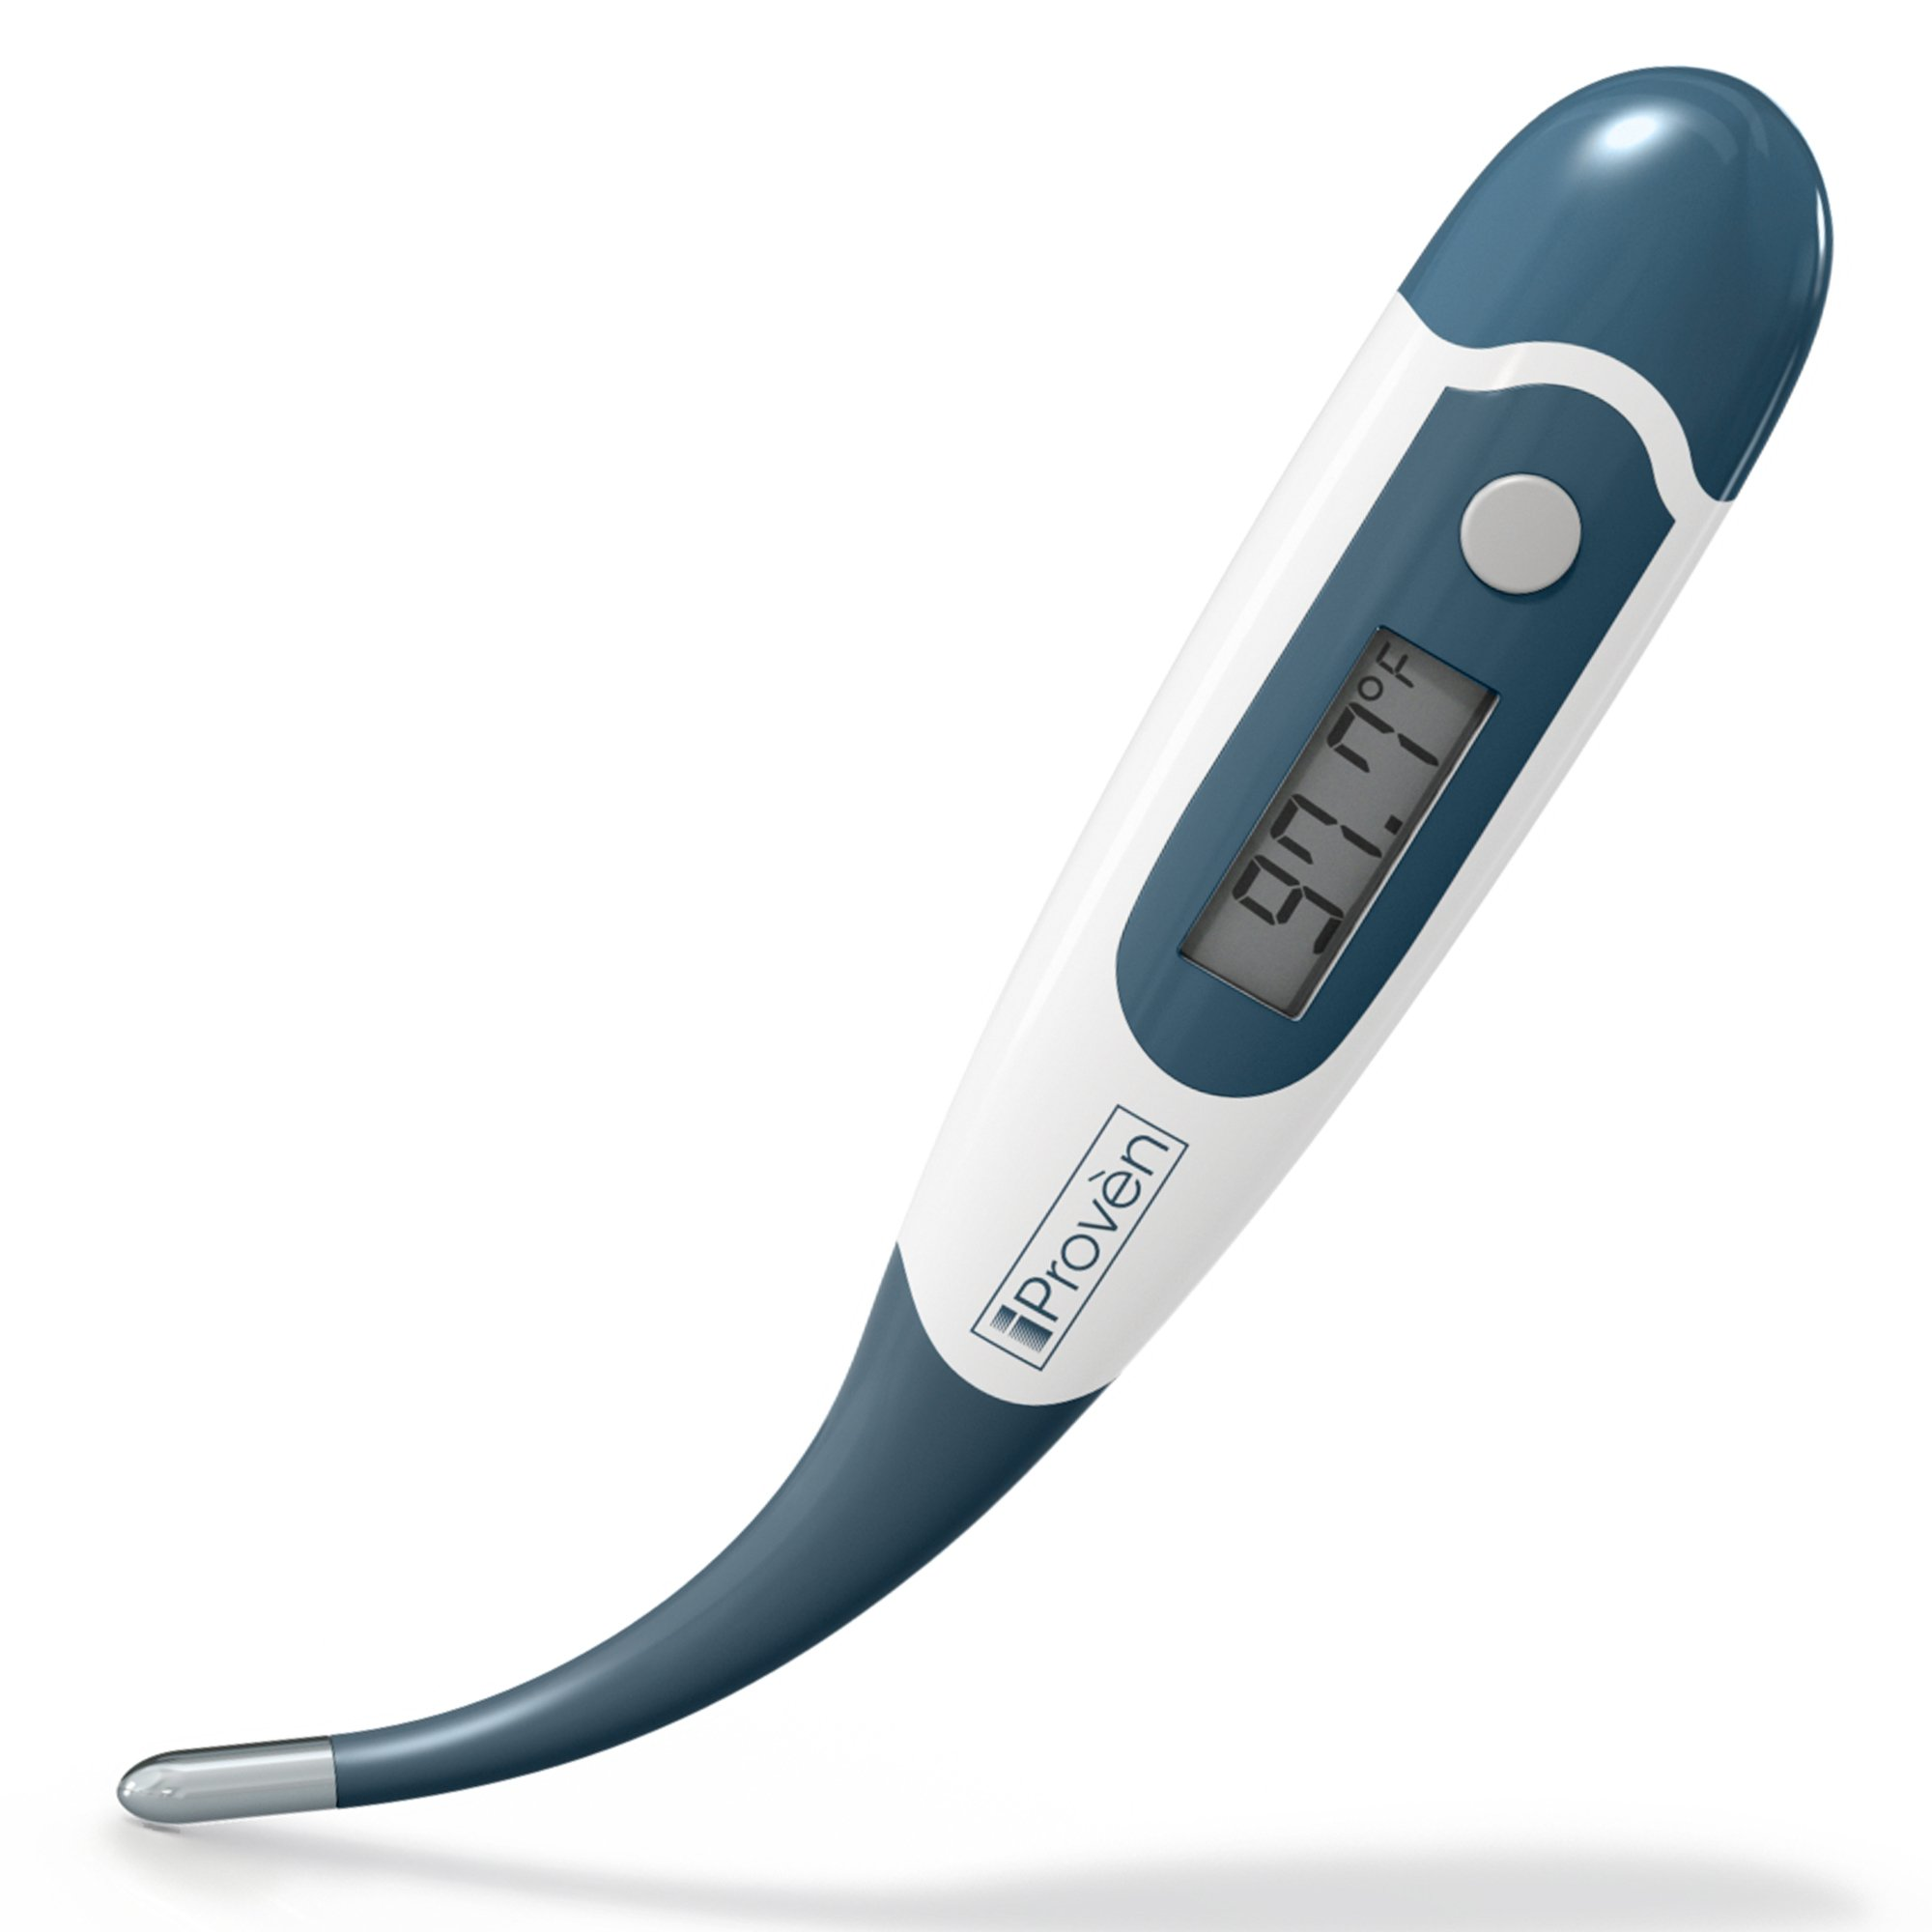 iProvèn Digital Thermometer for Rectal, Oral and Axillary Measurement - iProvèn DT-K117A